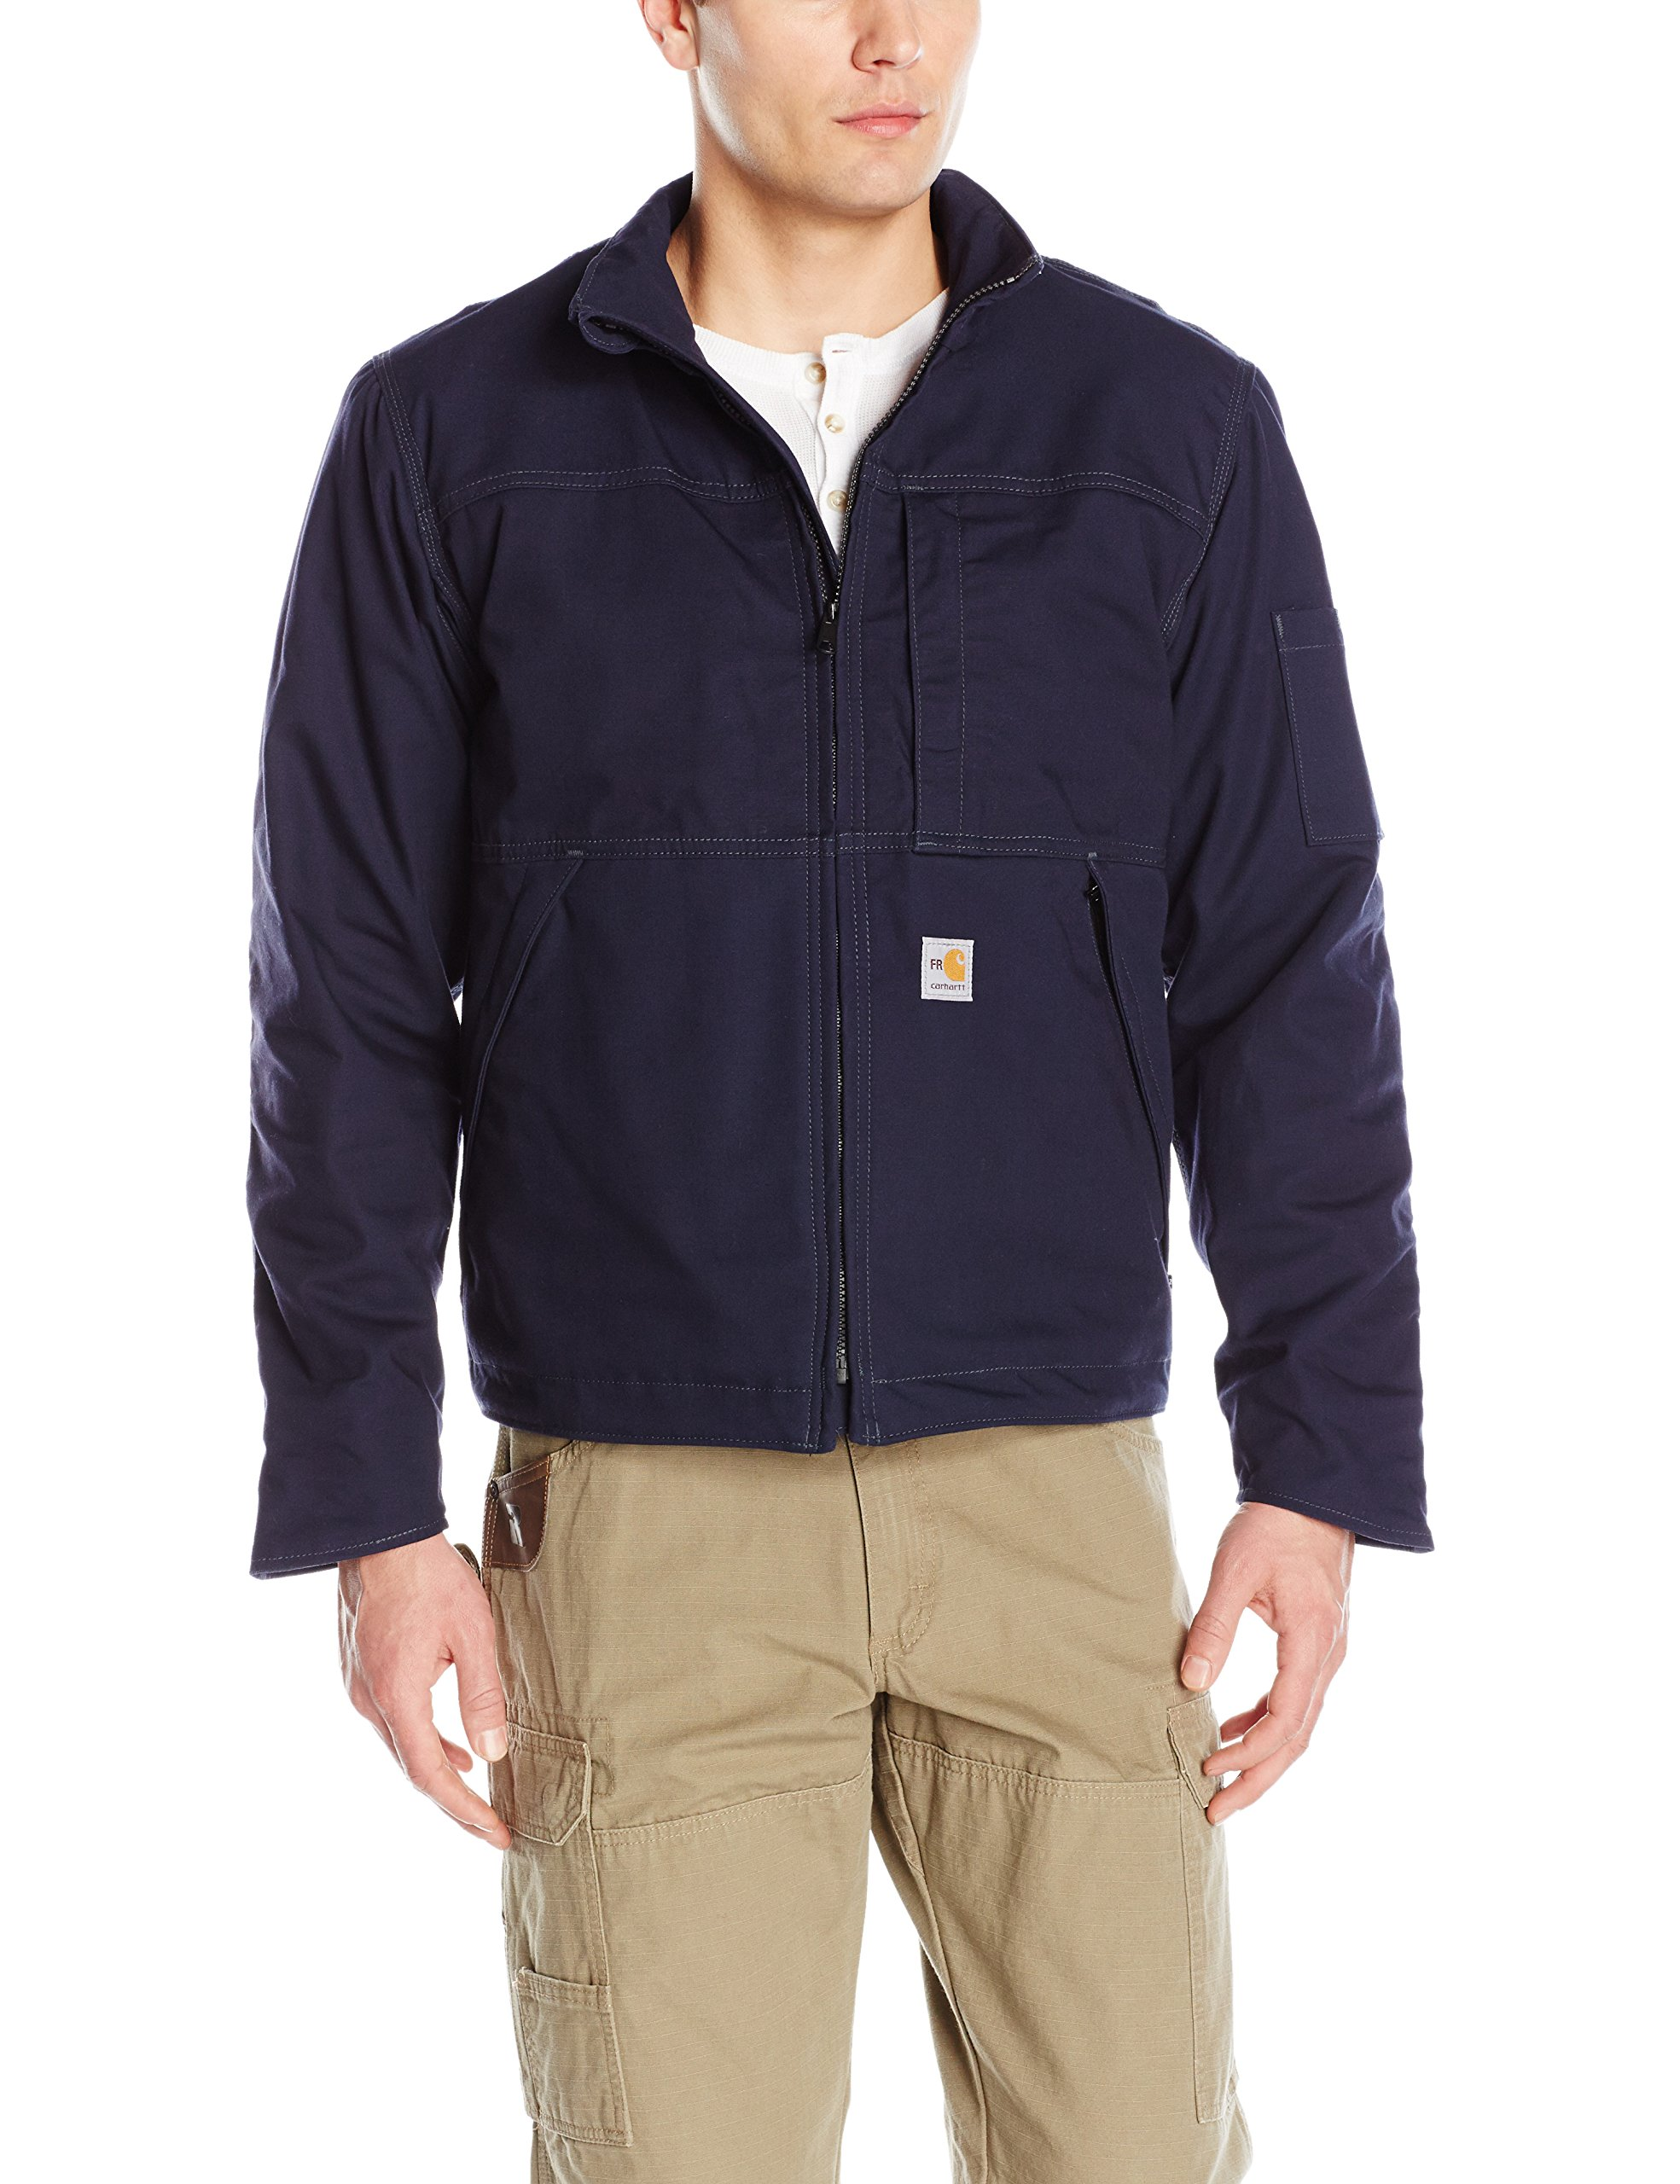 Carhartt Men's Flame Resistant Full Swing Quick Duck Jacket, Dark Navy, X-Large by Carhartt